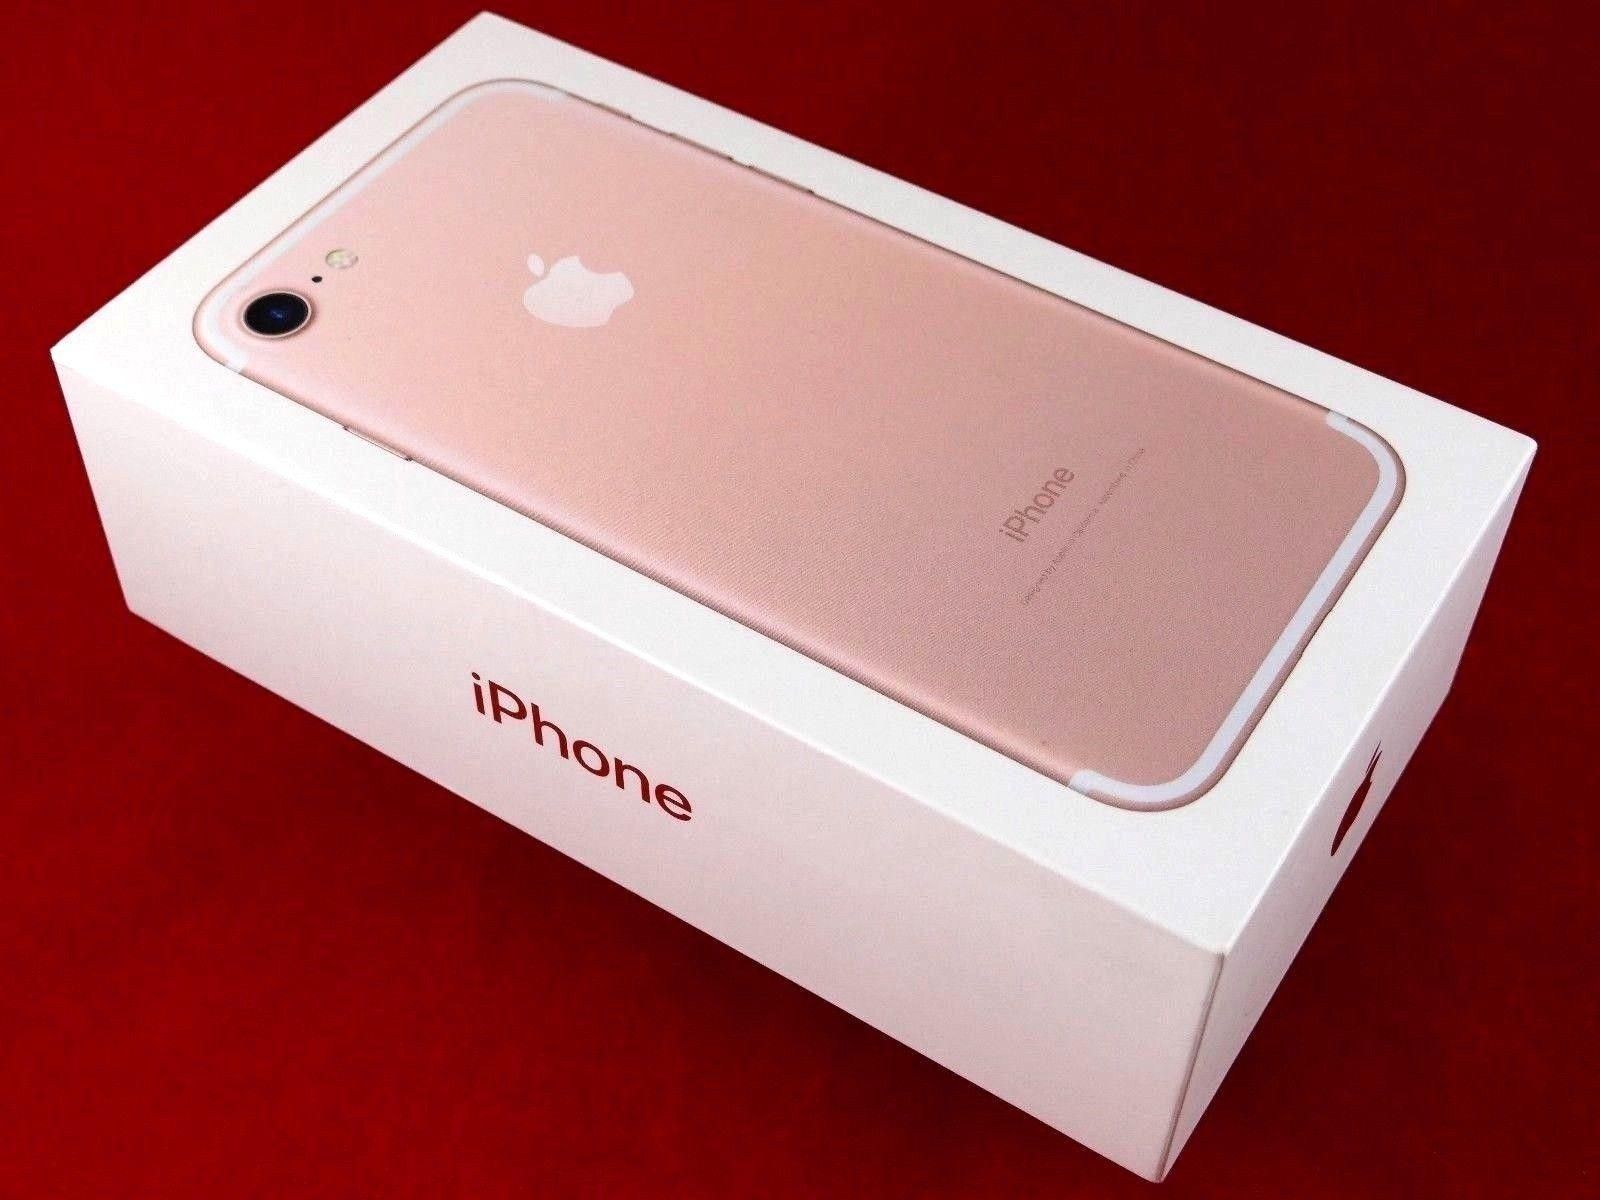 Shop In 2020 Iphone Iphone 7 Rose Gold Iphone 7